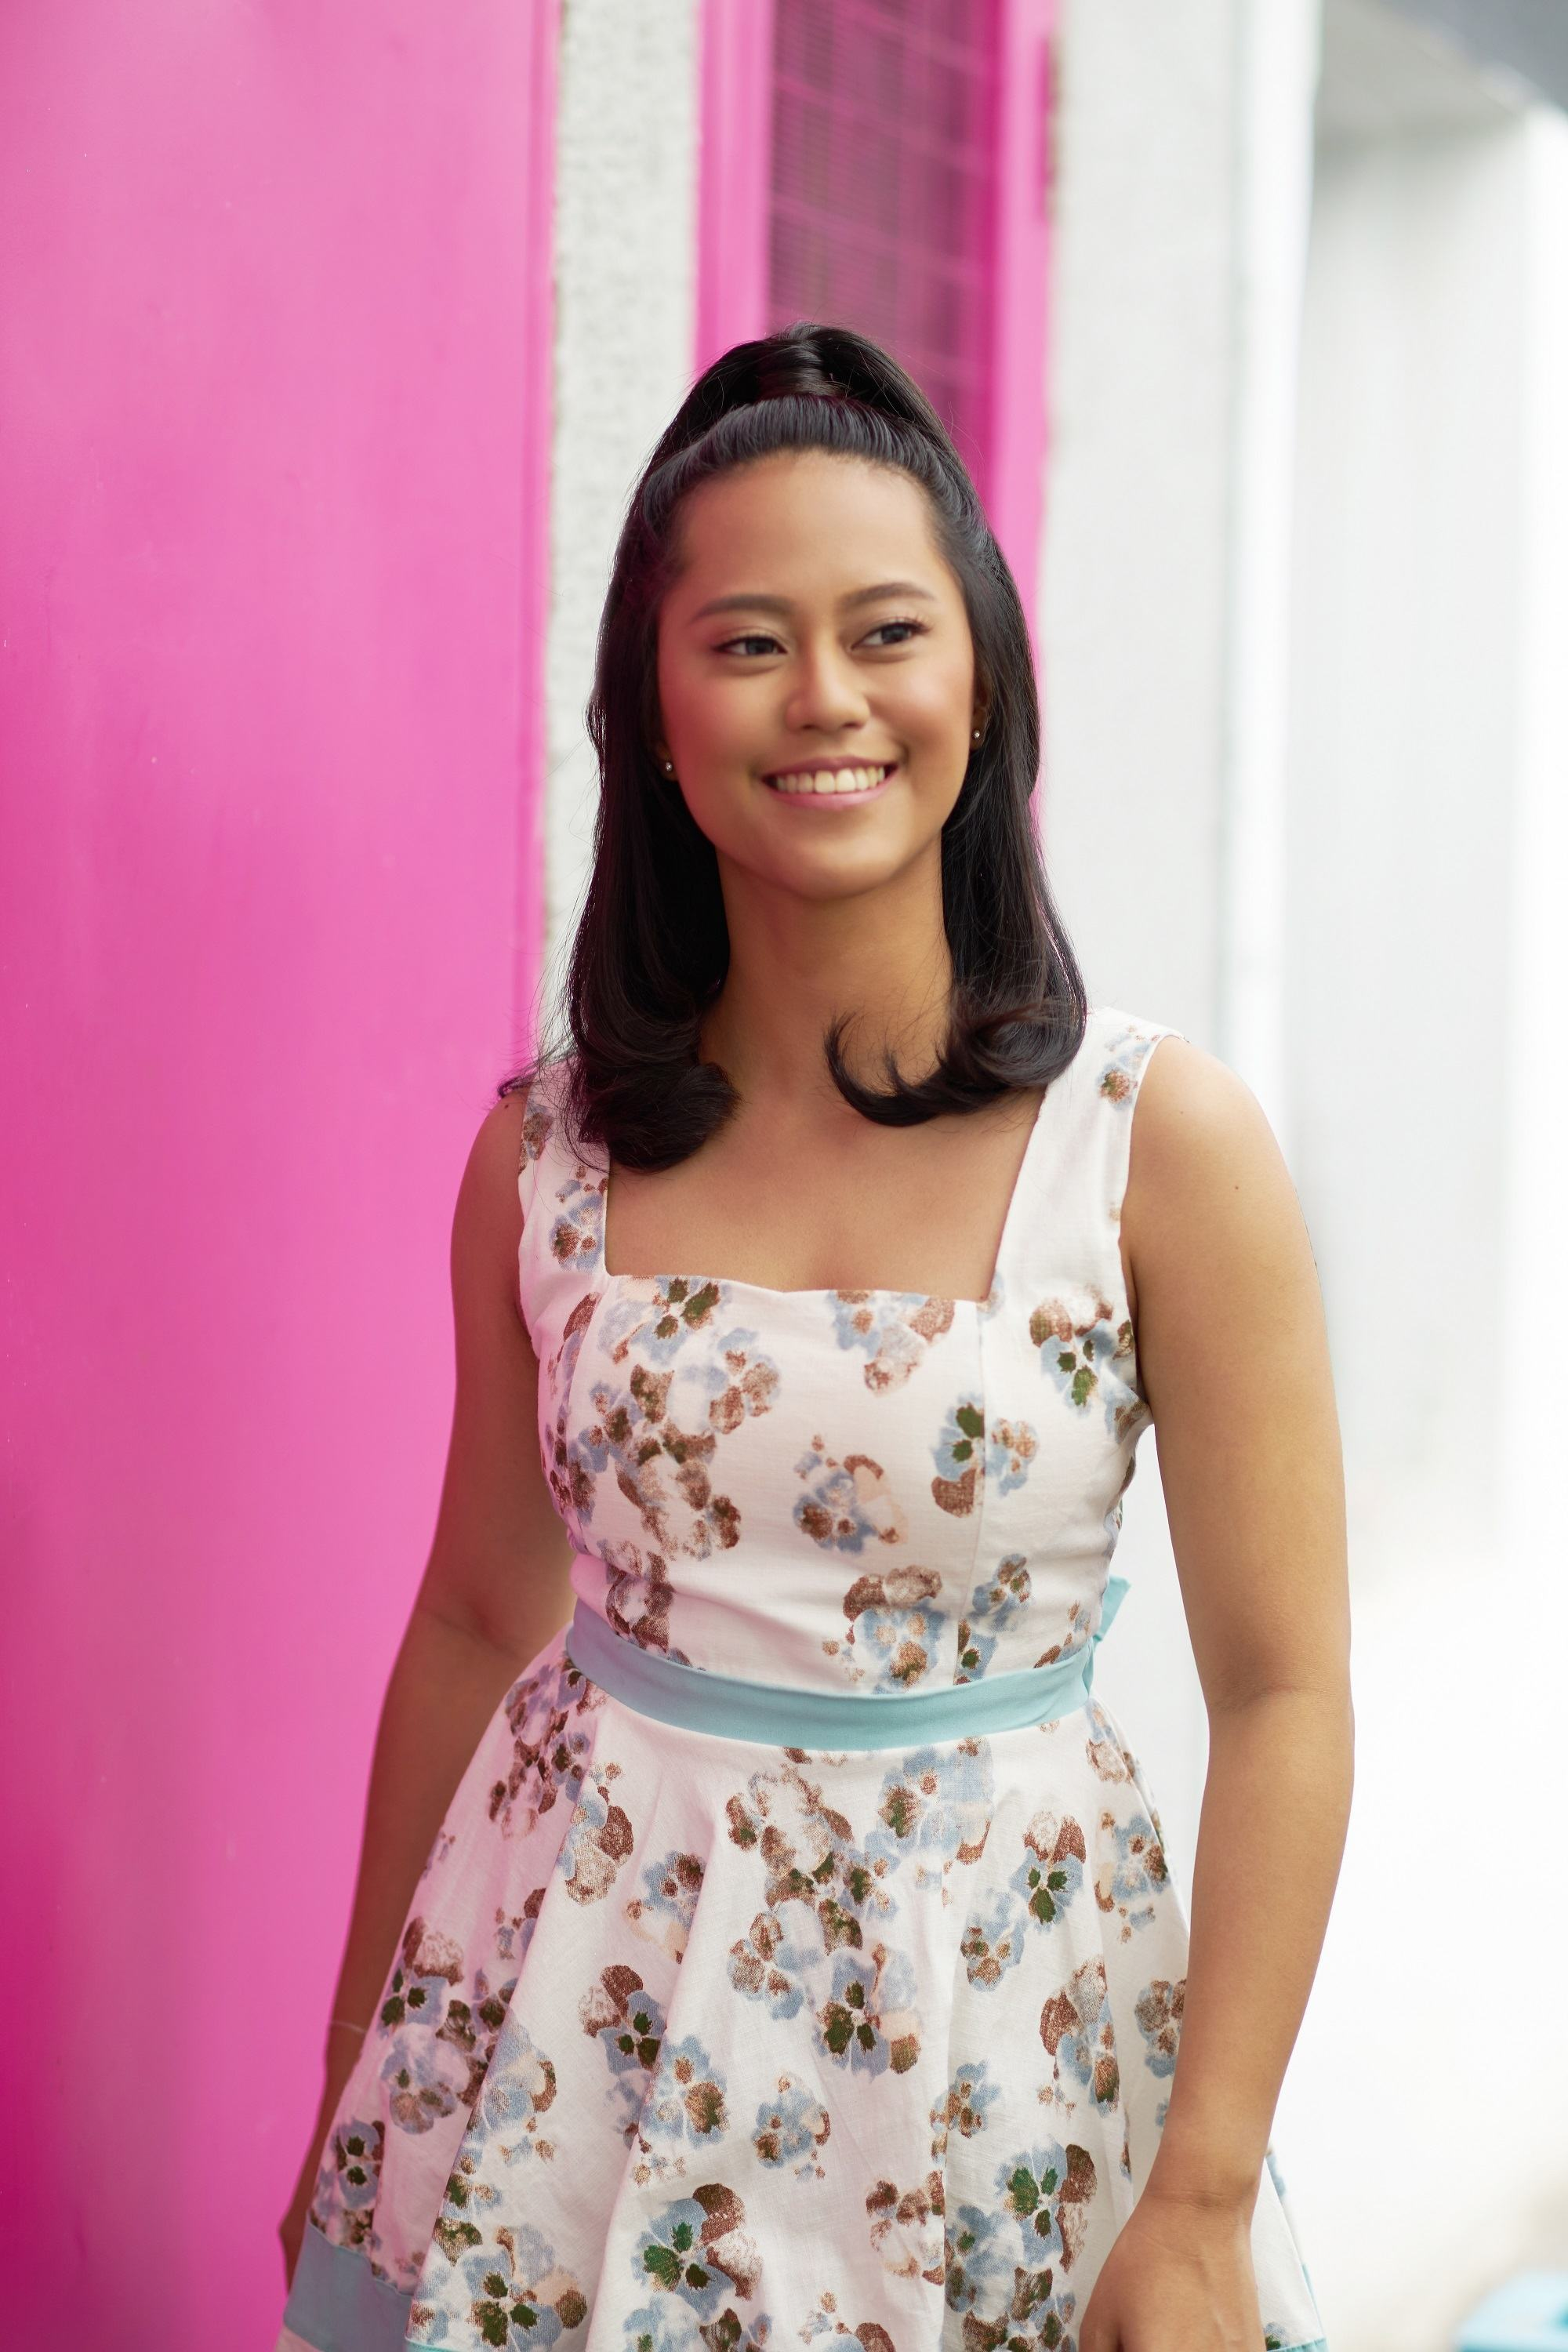 Half ponytail: Asian woman with shoulder-length black hair in a half ponytail wearing a floral dress against a pink and white wall